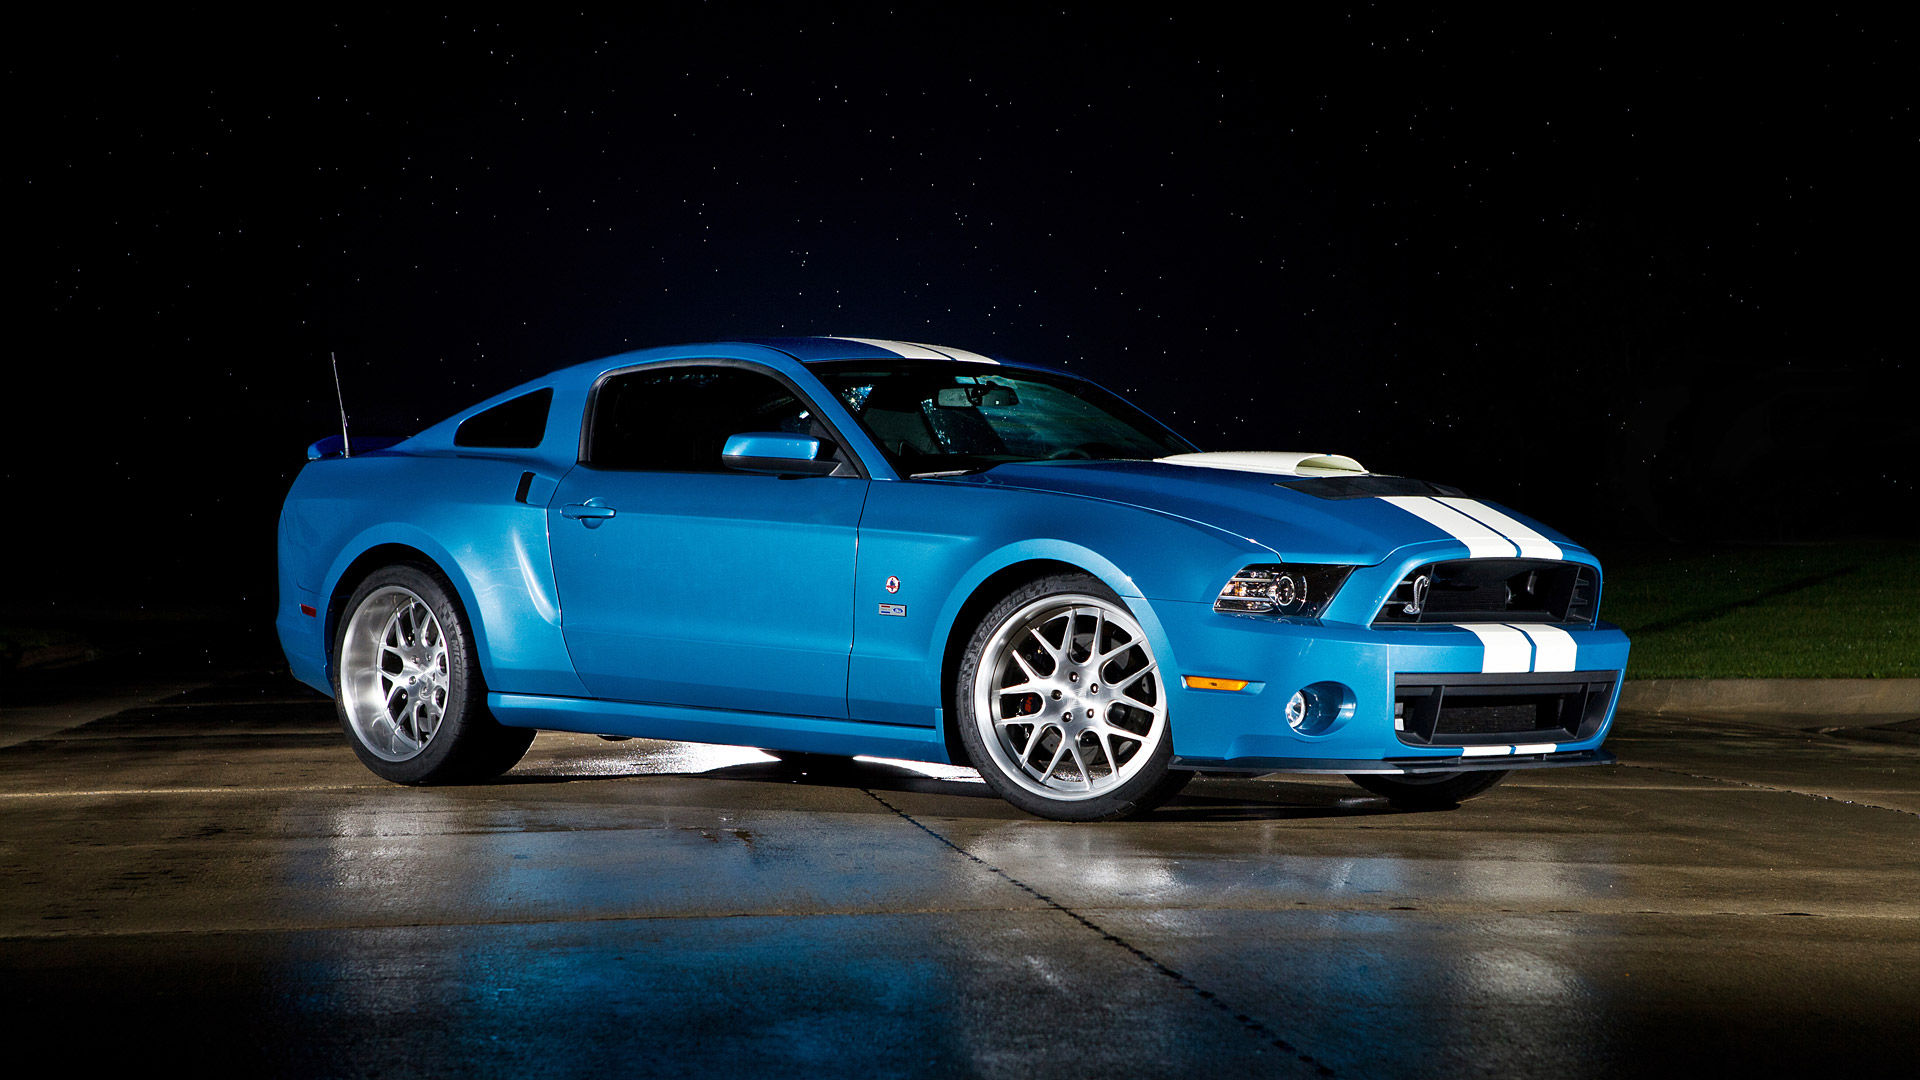 2013 Ford Shelby Mustang GT500 Cobra